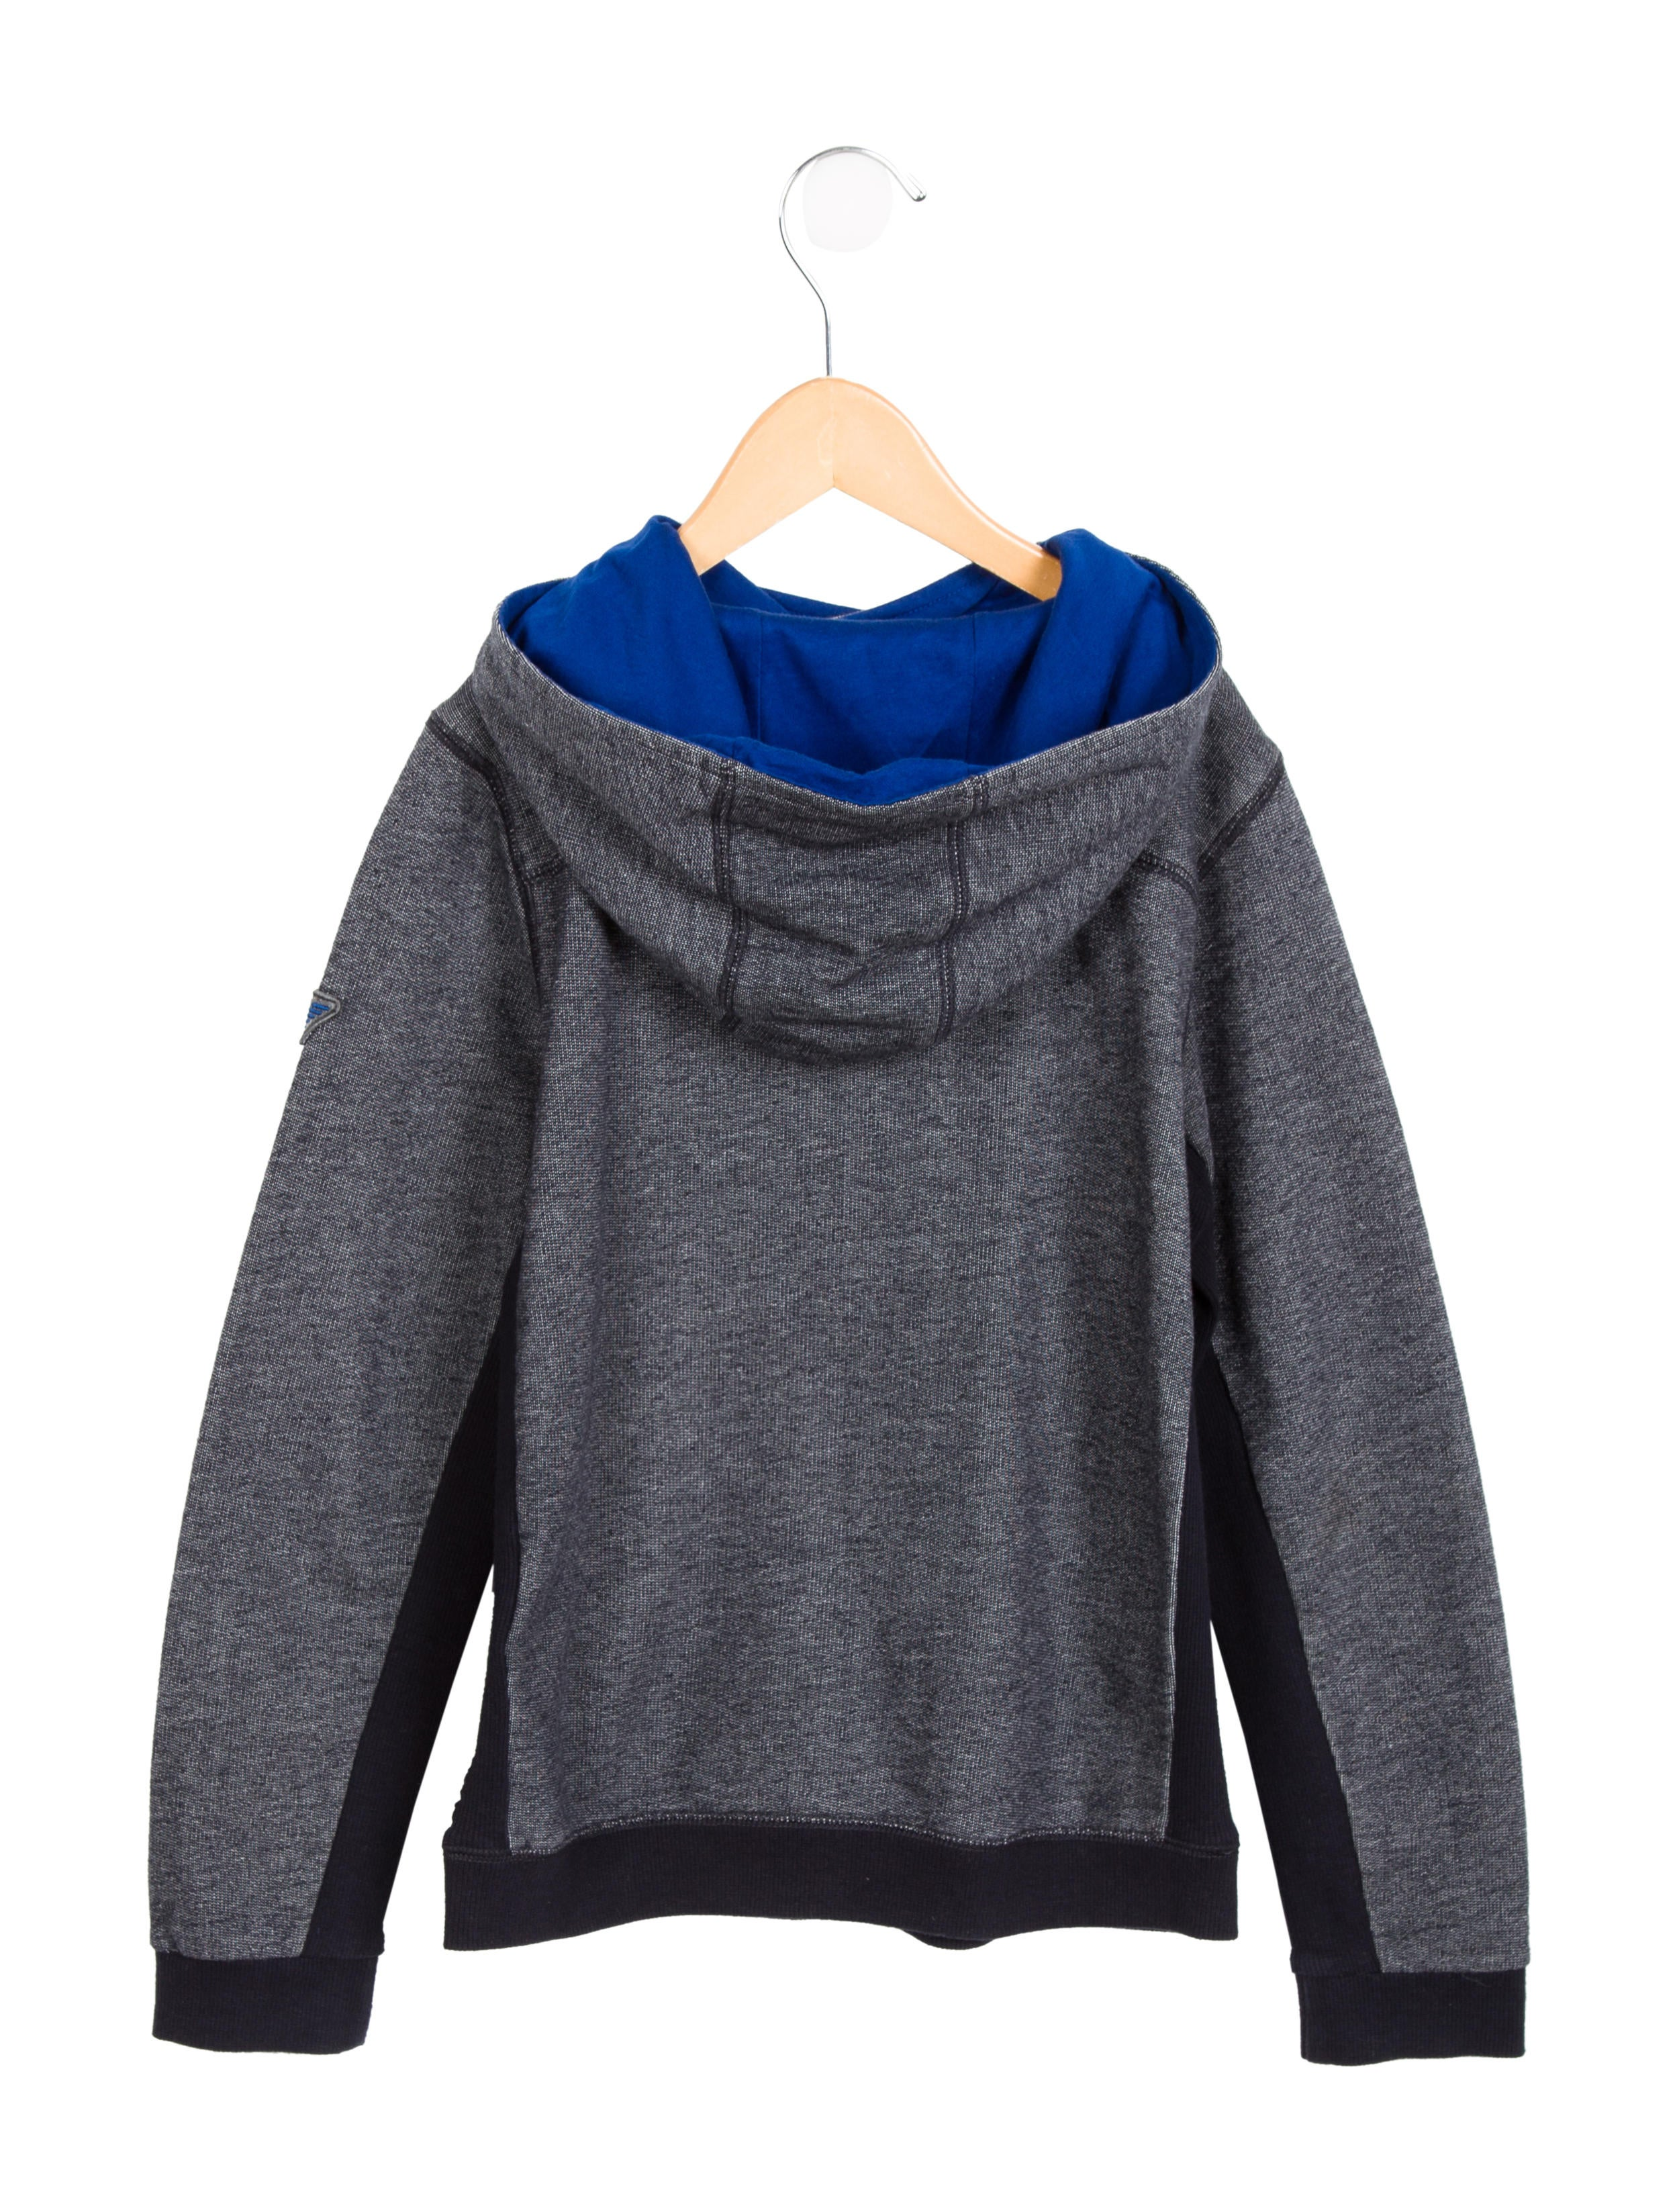 Find great deals on eBay for hooded sweater boy. Shop with confidence.